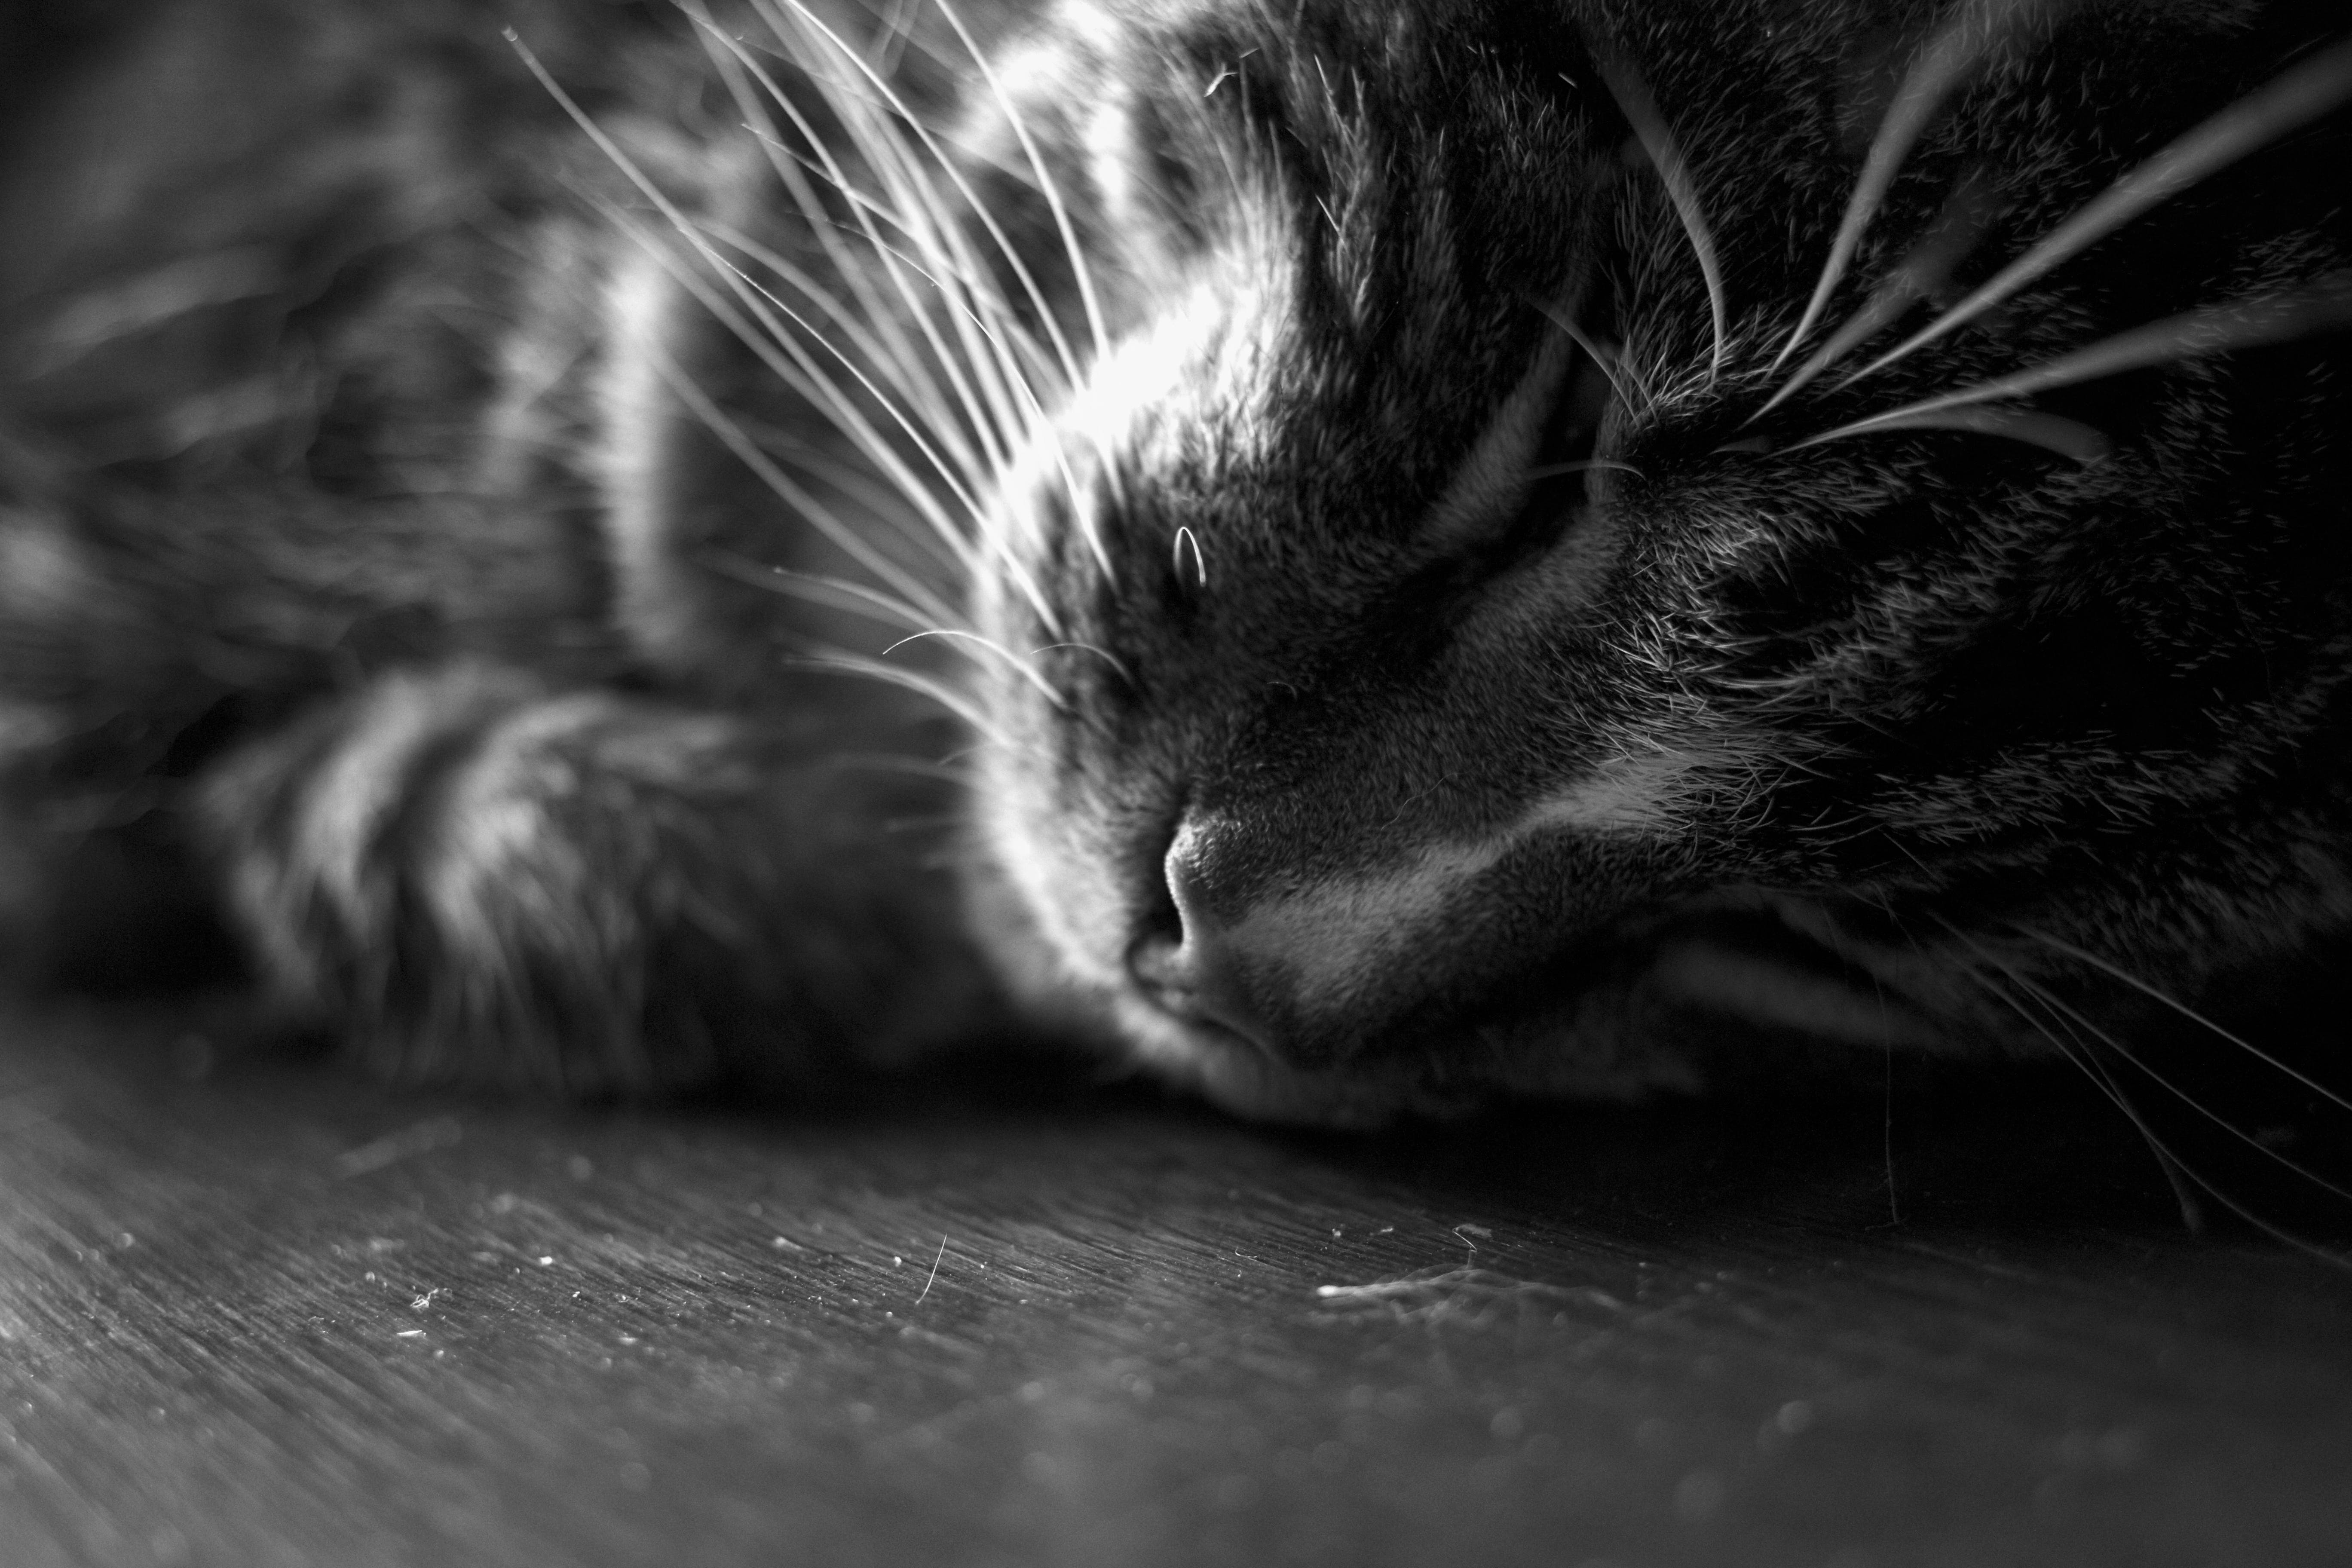 Free stock photo of animal, close up, black and white, peaceful